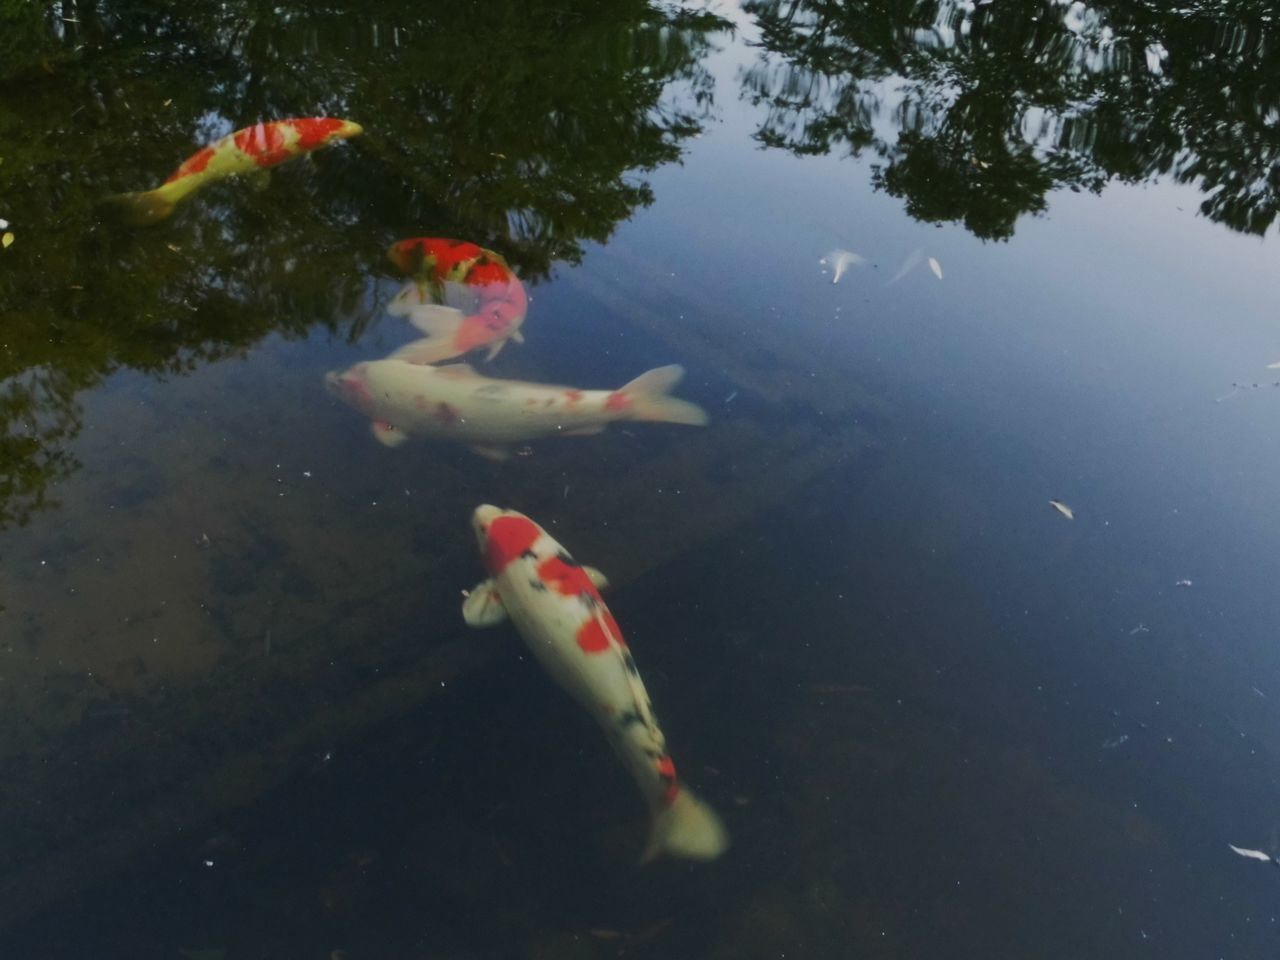 water, swimming, koi carp, fish, animal themes, carp, nature, high angle view, reflection, animals in the wild, no people, day, outdoors, sea life, close-up